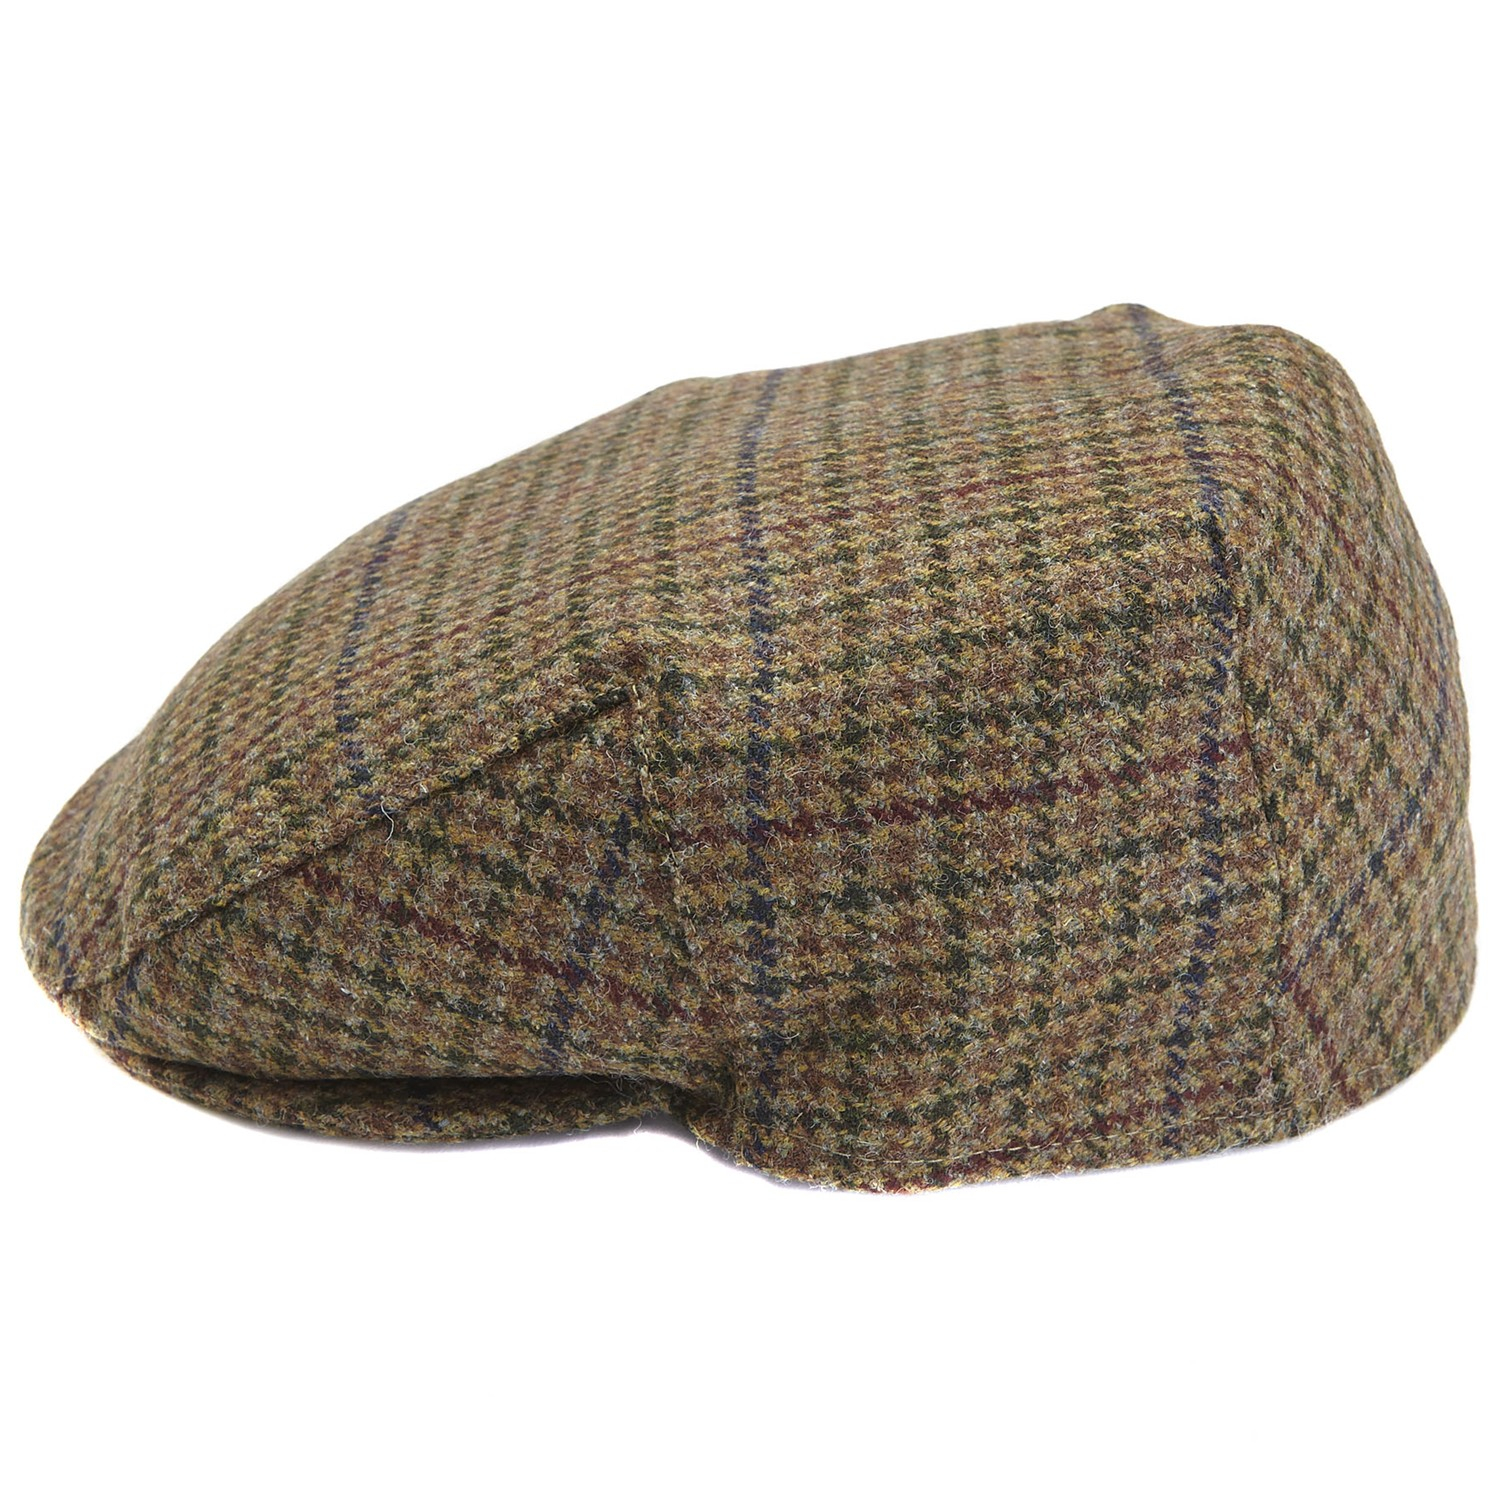 02100a085f4 Barbour Wool Crieff Check Flat Cap in Brown for Men - Lyst